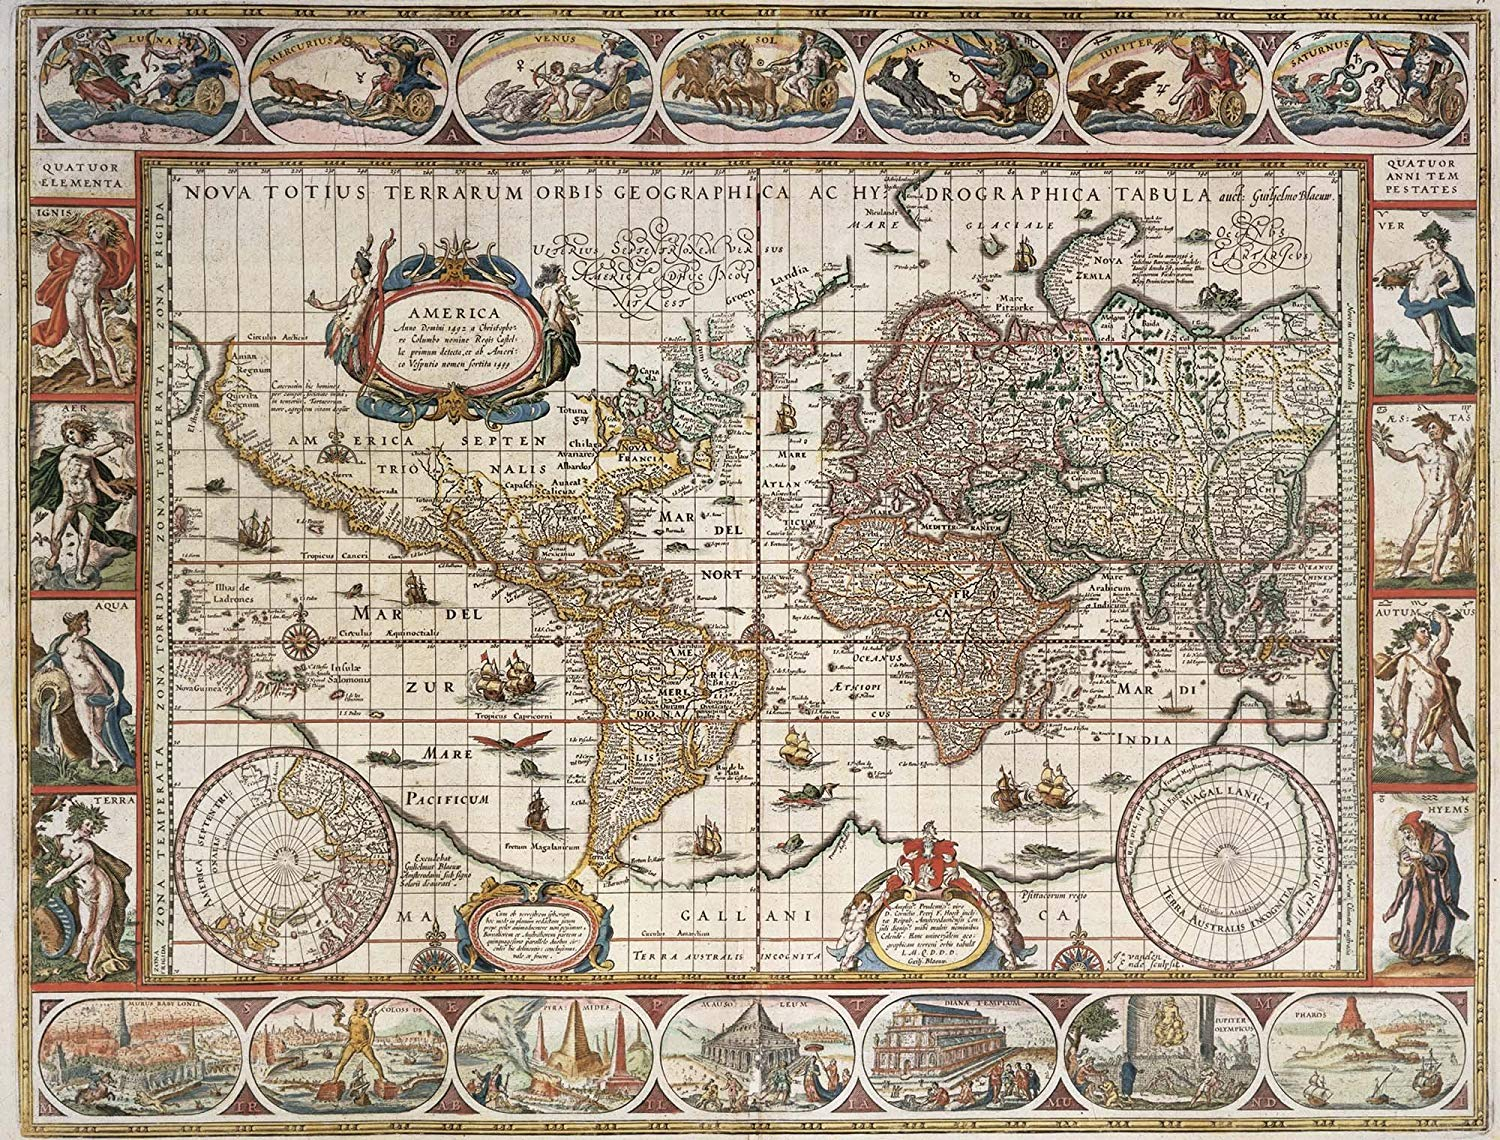 MAP OF THE WORLD FROM 1650 2000 PIECE JIGSAW PUZZLE